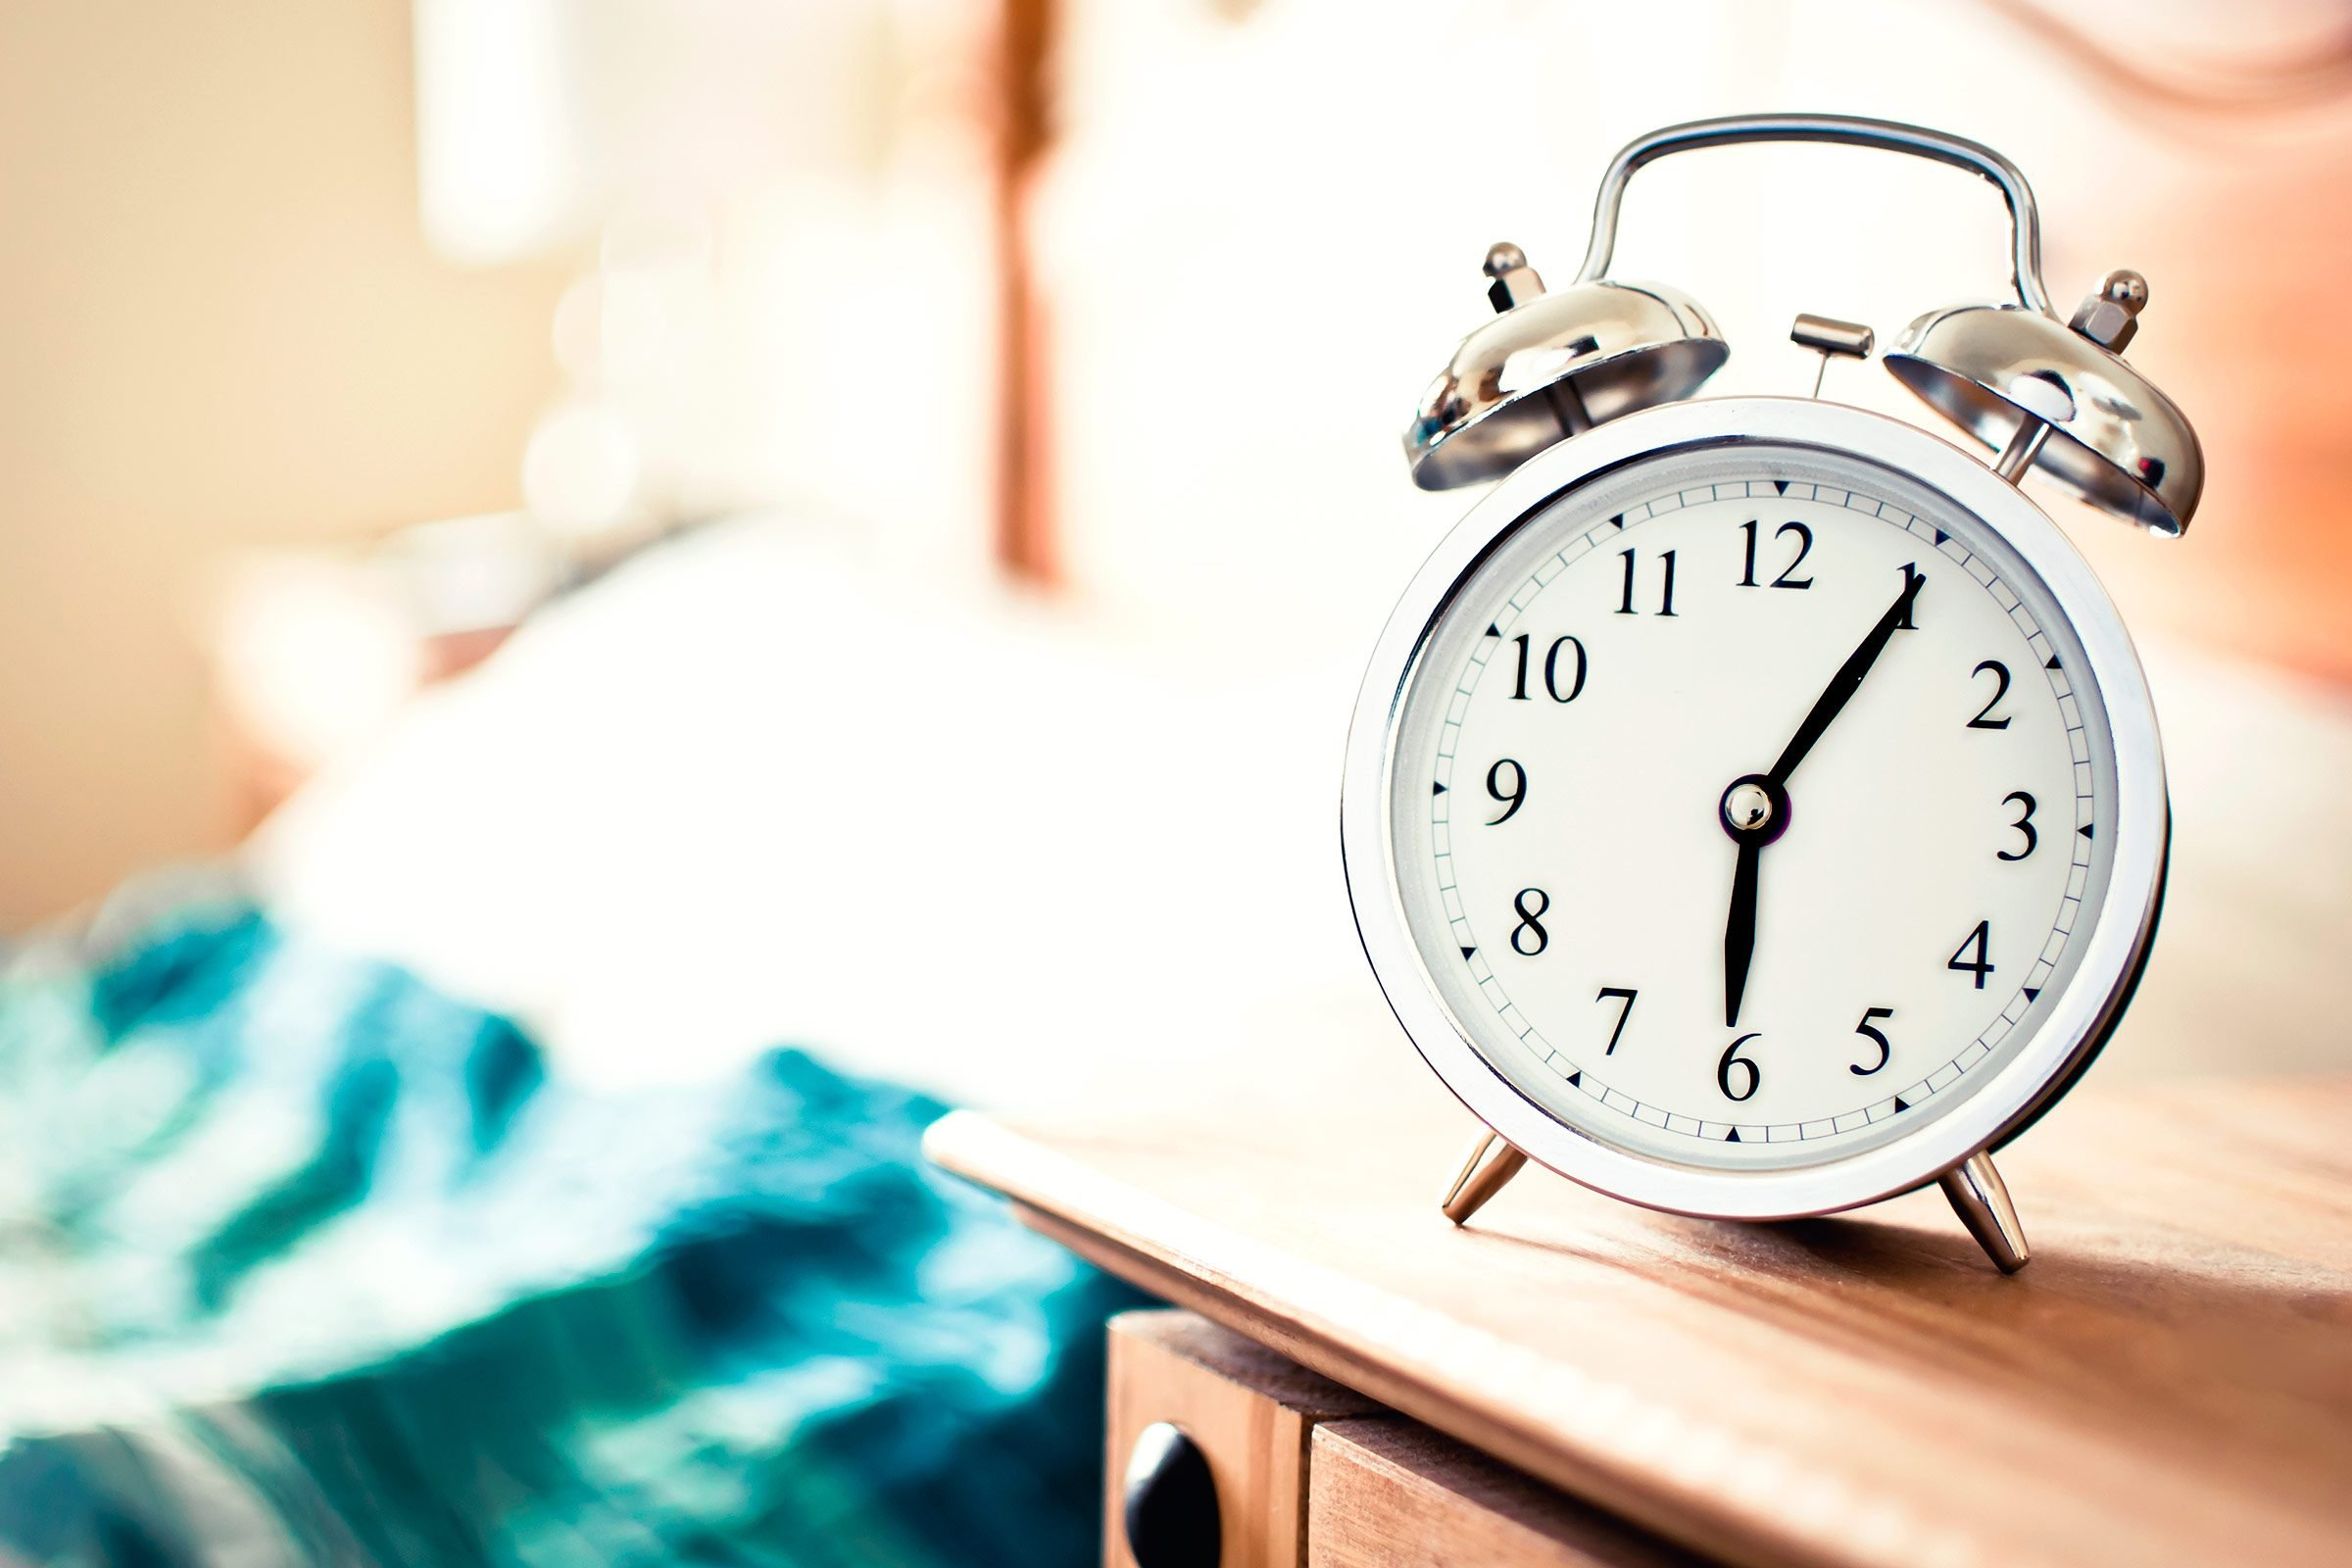 Limit the length of your snooze